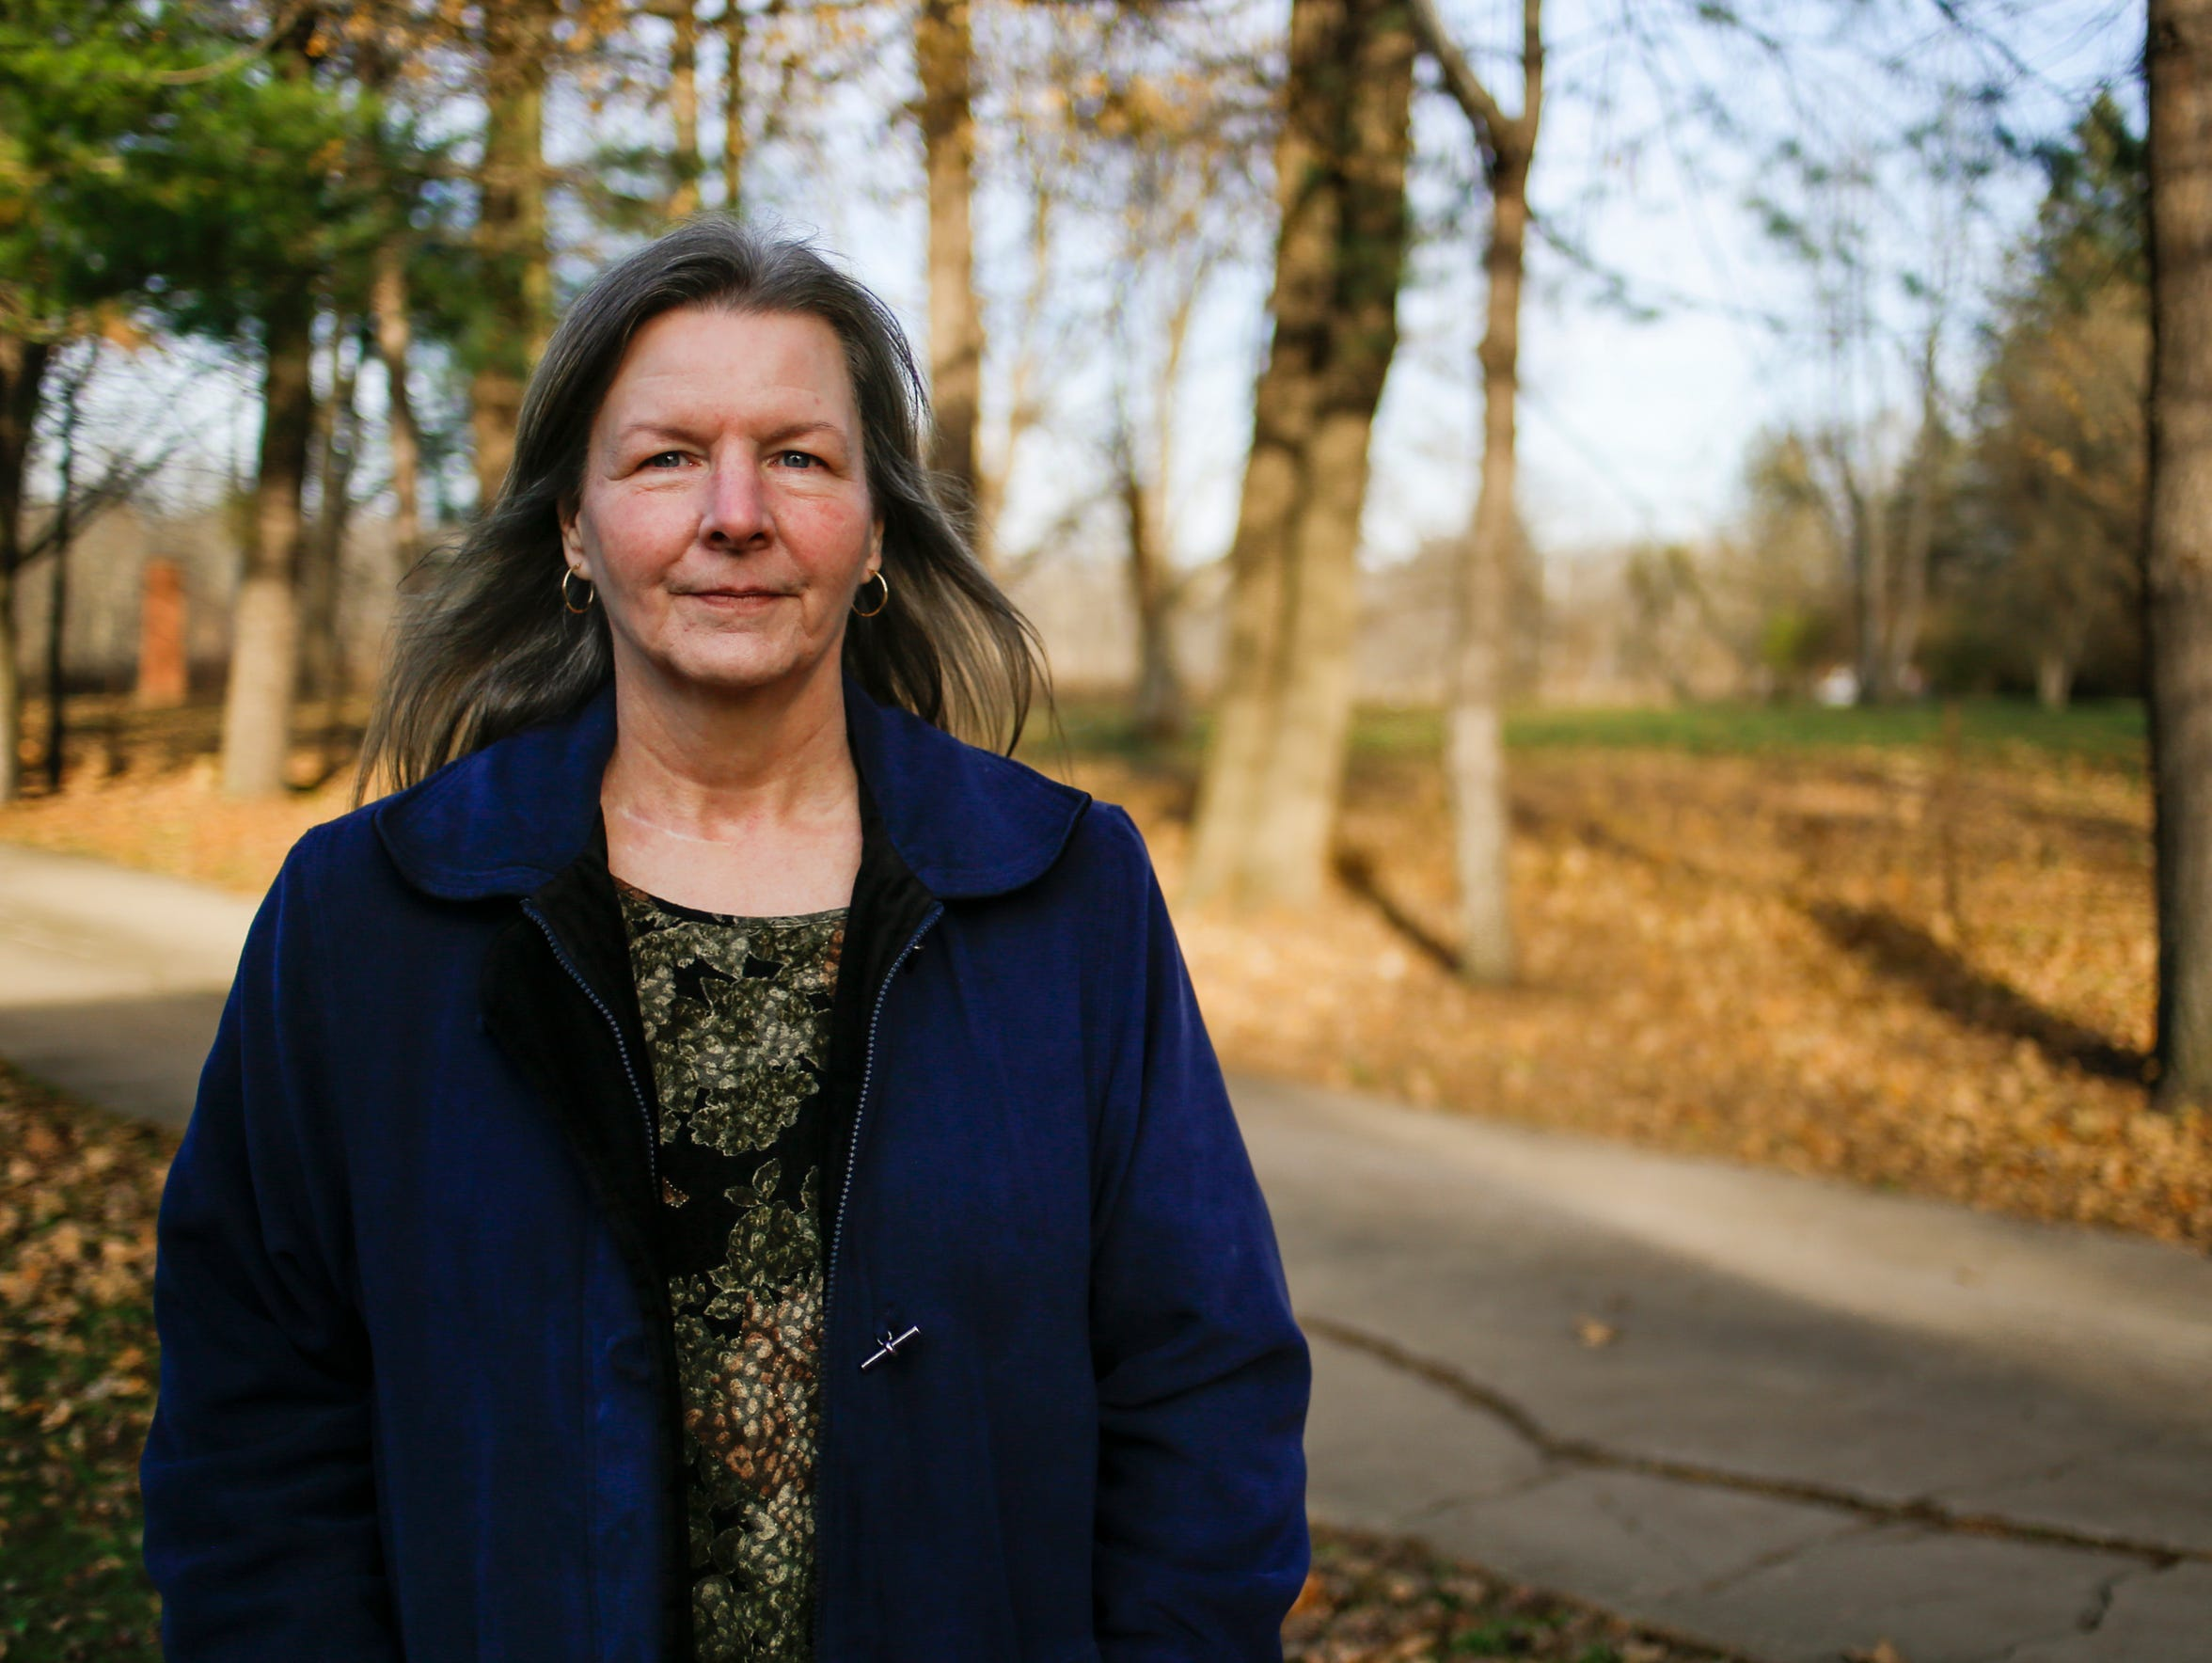 Dena Oyler, 58, of Grand Rapids, is a caregiver and marijuana patient. She says caregivers offer more personal service than dispensaries and worries they may be pushed out by large scale growers.